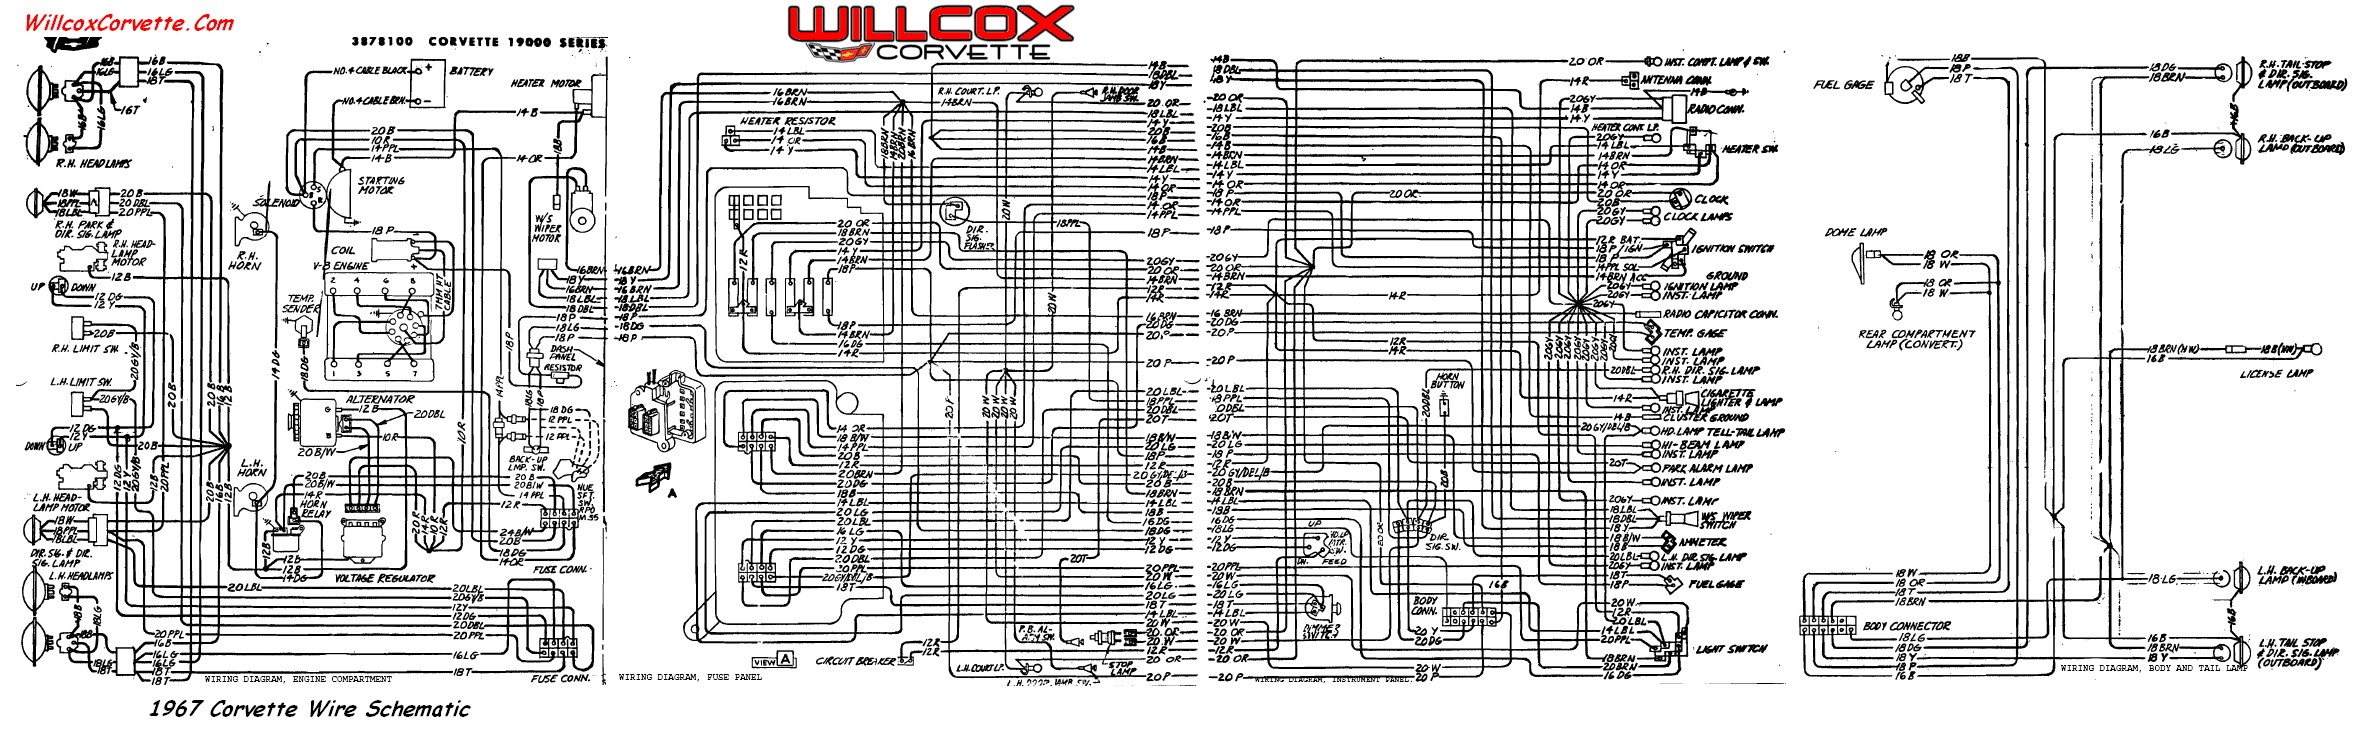 80 corvette wiring diagram diagram schematic rh yomelaniejo co 83 Corvette Wiring Schematic 1984 Corvette Wiring Schematic